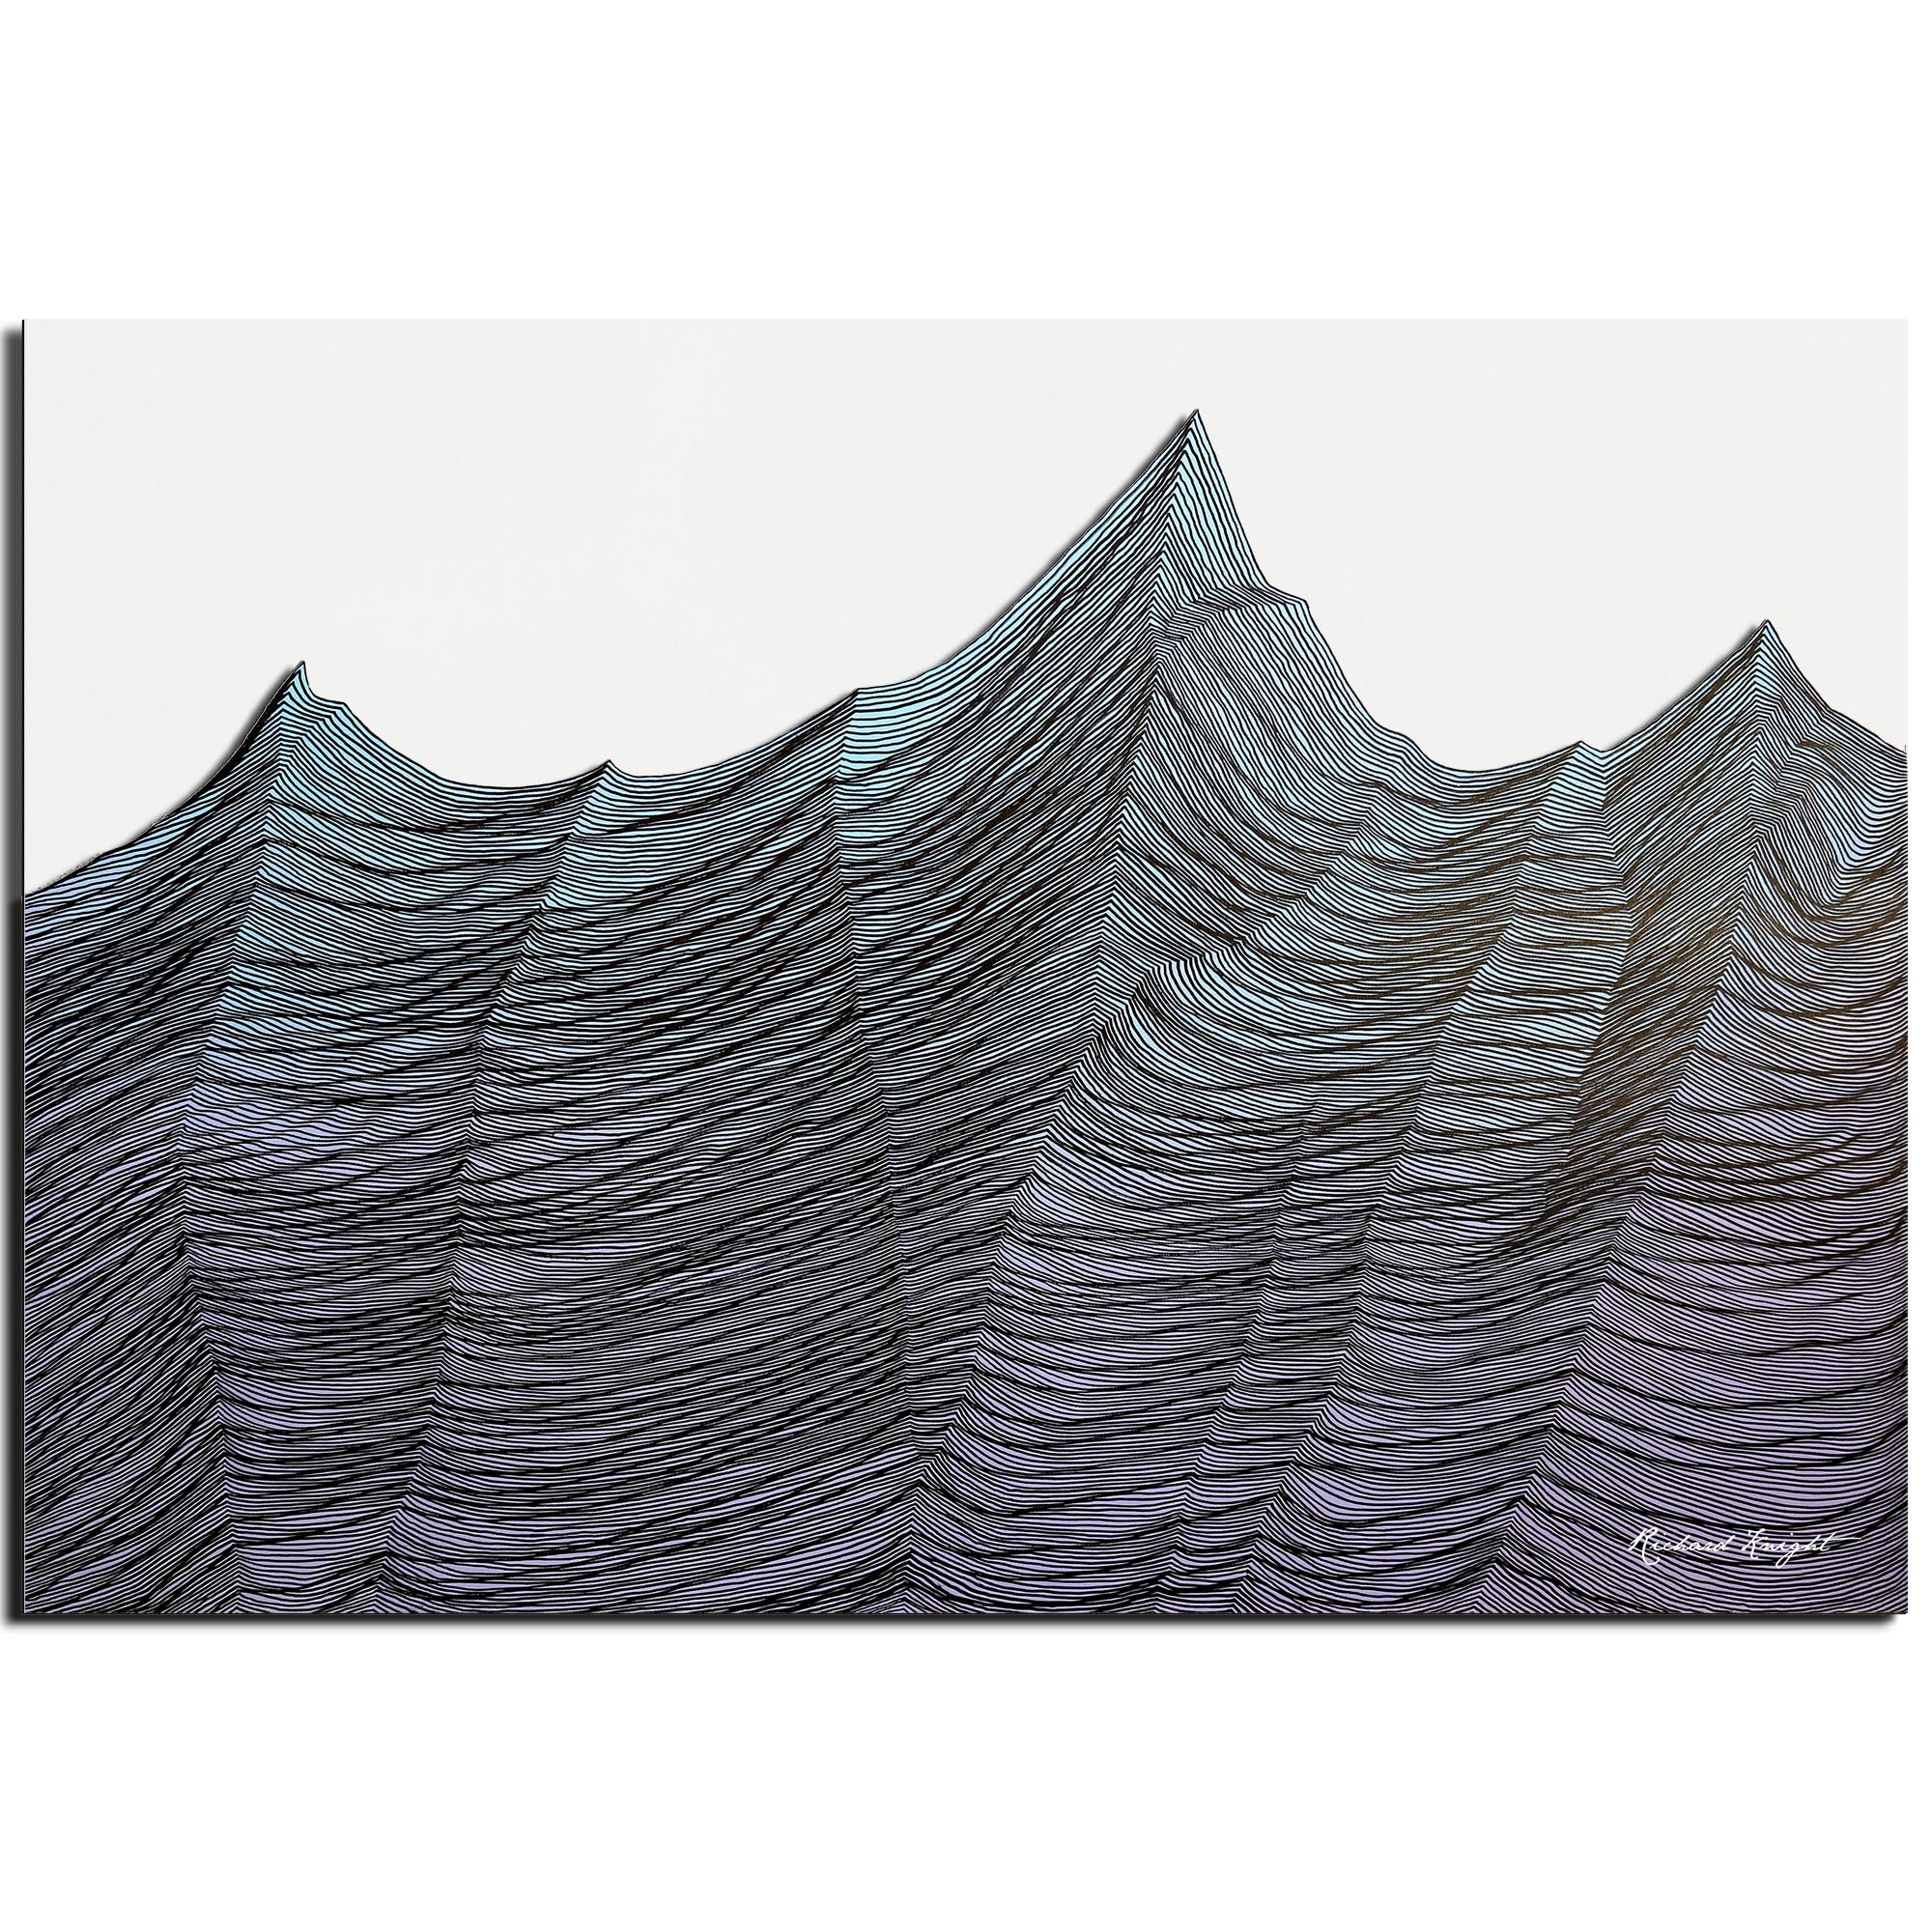 Richard Knight 'Brisk Range' 32in x 22in Abstract Landscape Art on Polymetal